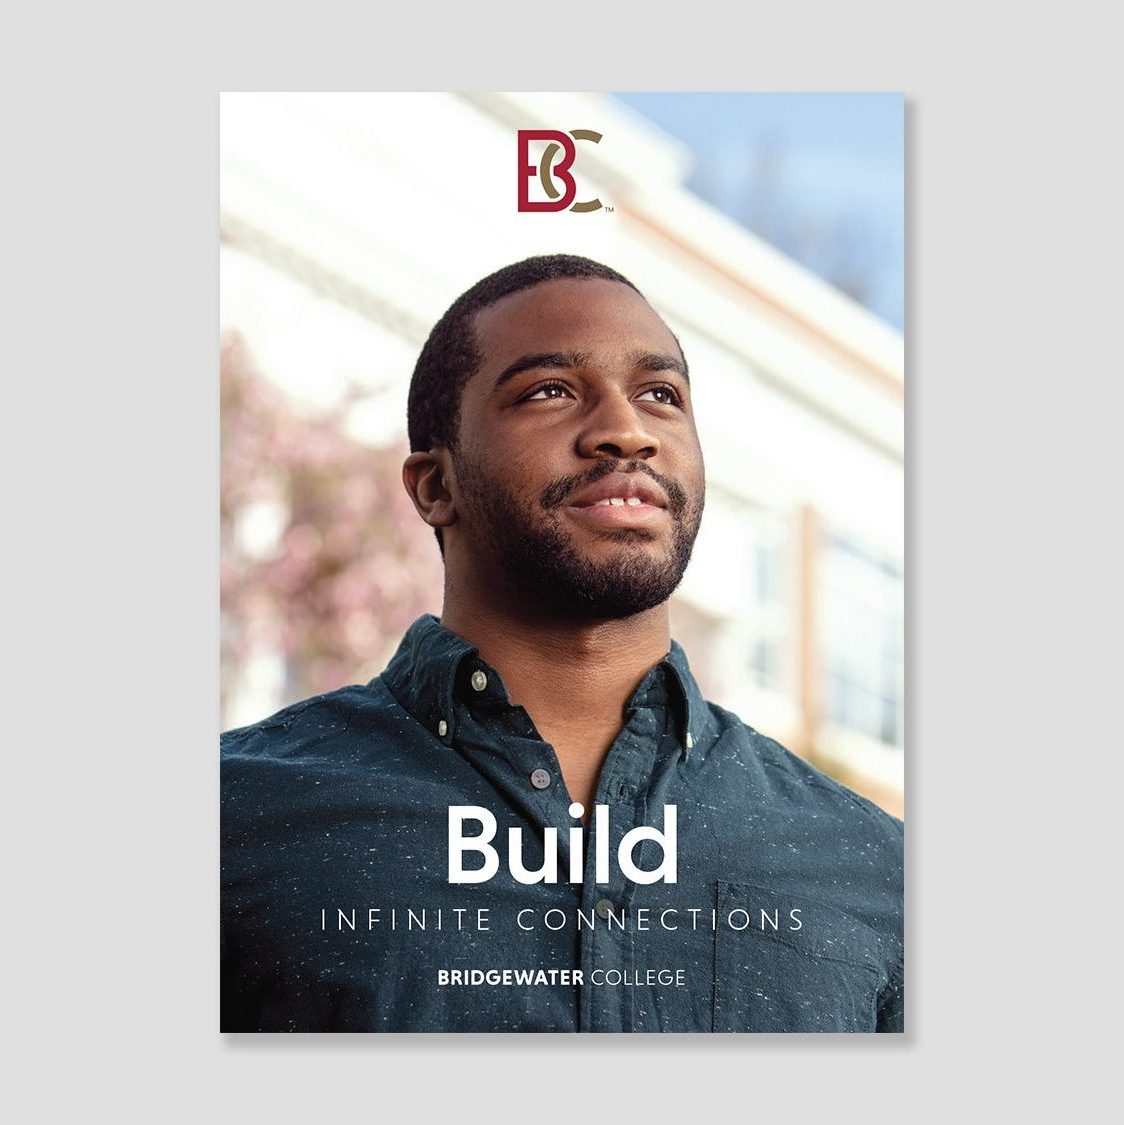 Brochure cover showing a young black man. Image text: Build infinite connections.